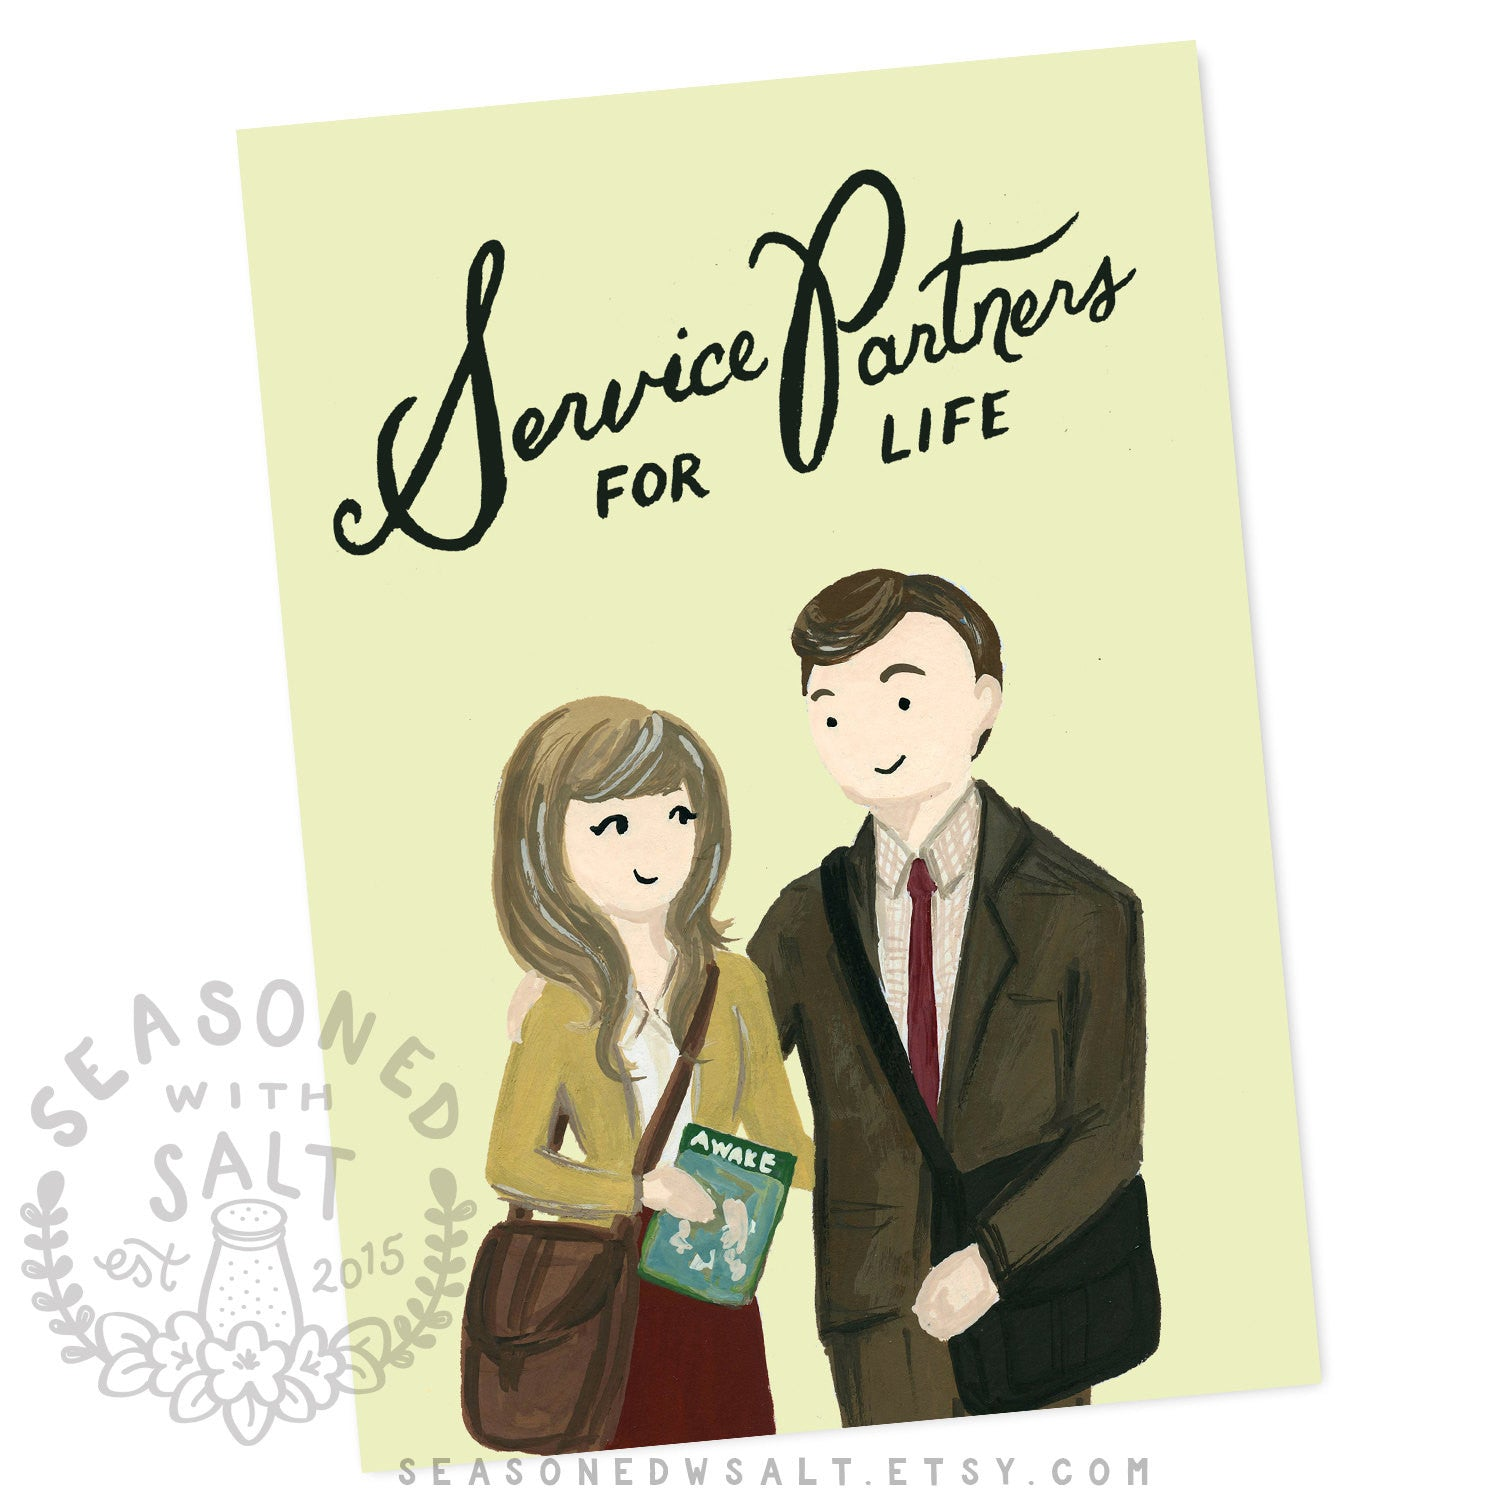 Service Partners For Life 5x7 Jw Greeting Card Seasoned With Salt